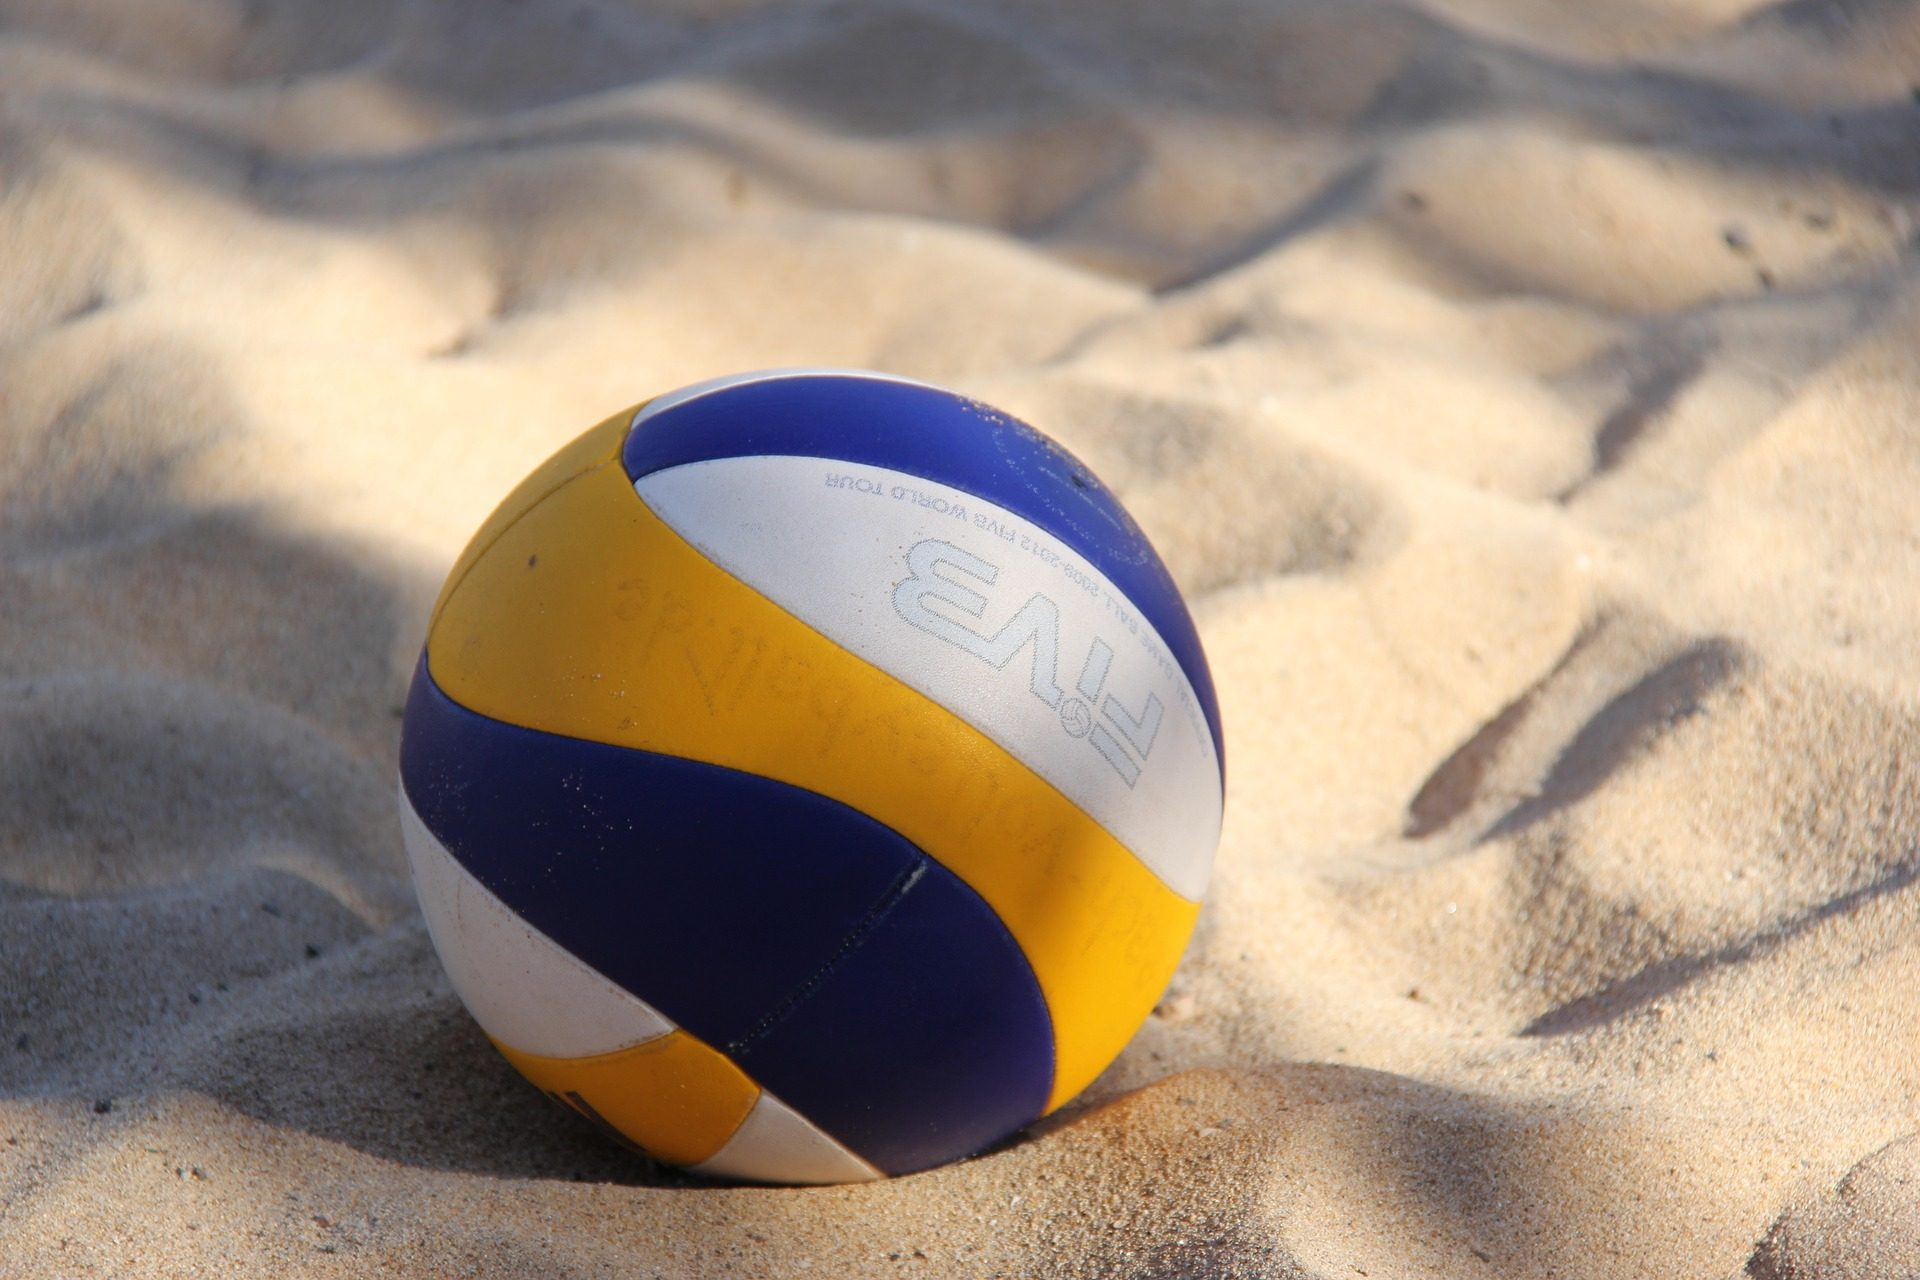 Kugel, Ballon, Volleyball, Sand, Strand - Wallpaper HD - Prof.-falken.com